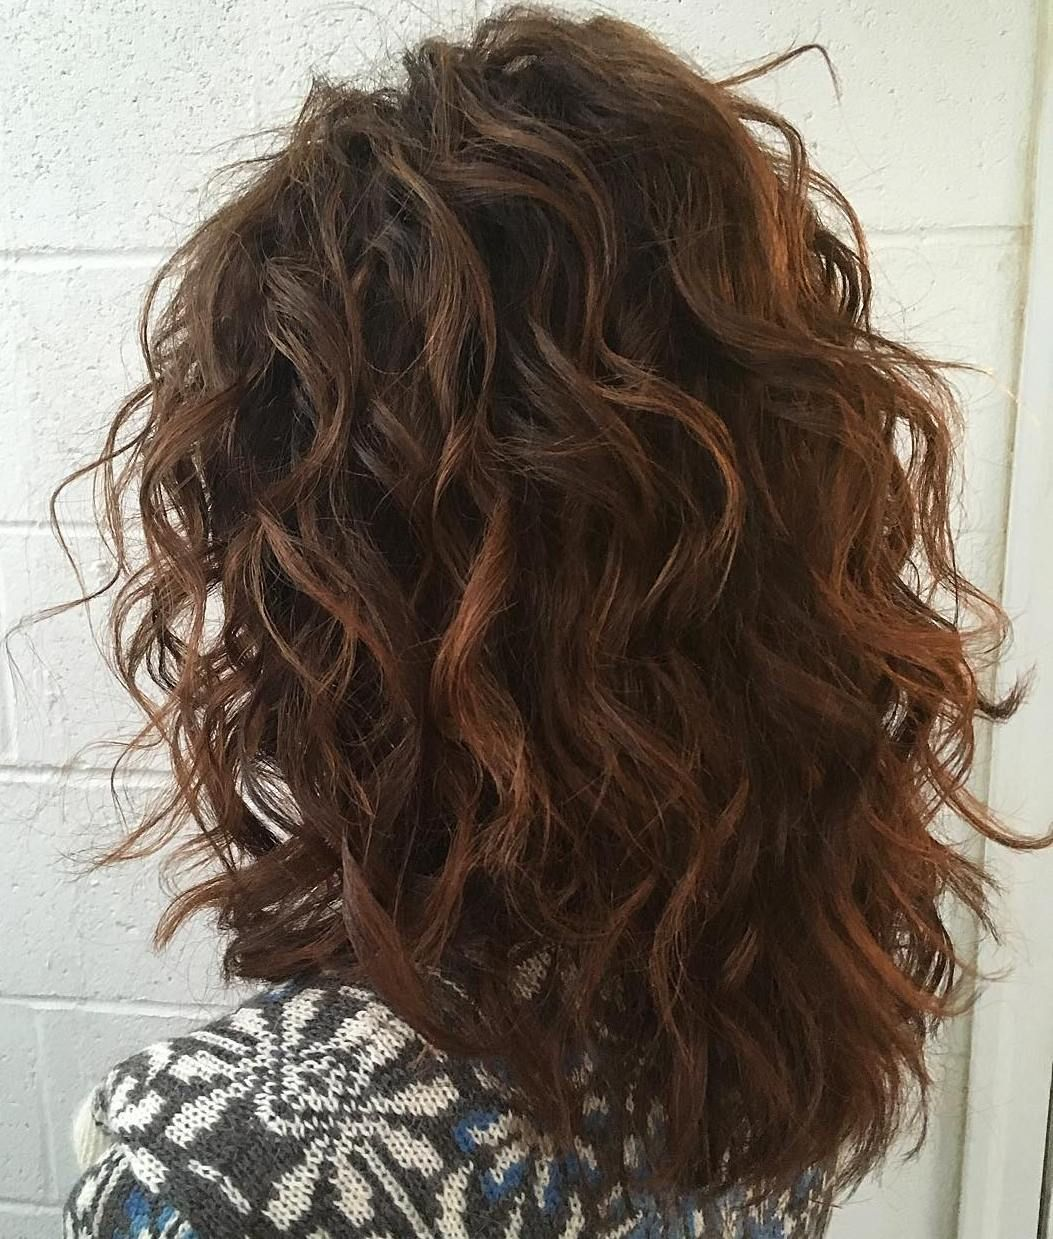 Tell me ow to make my hair look like this! This is the exact